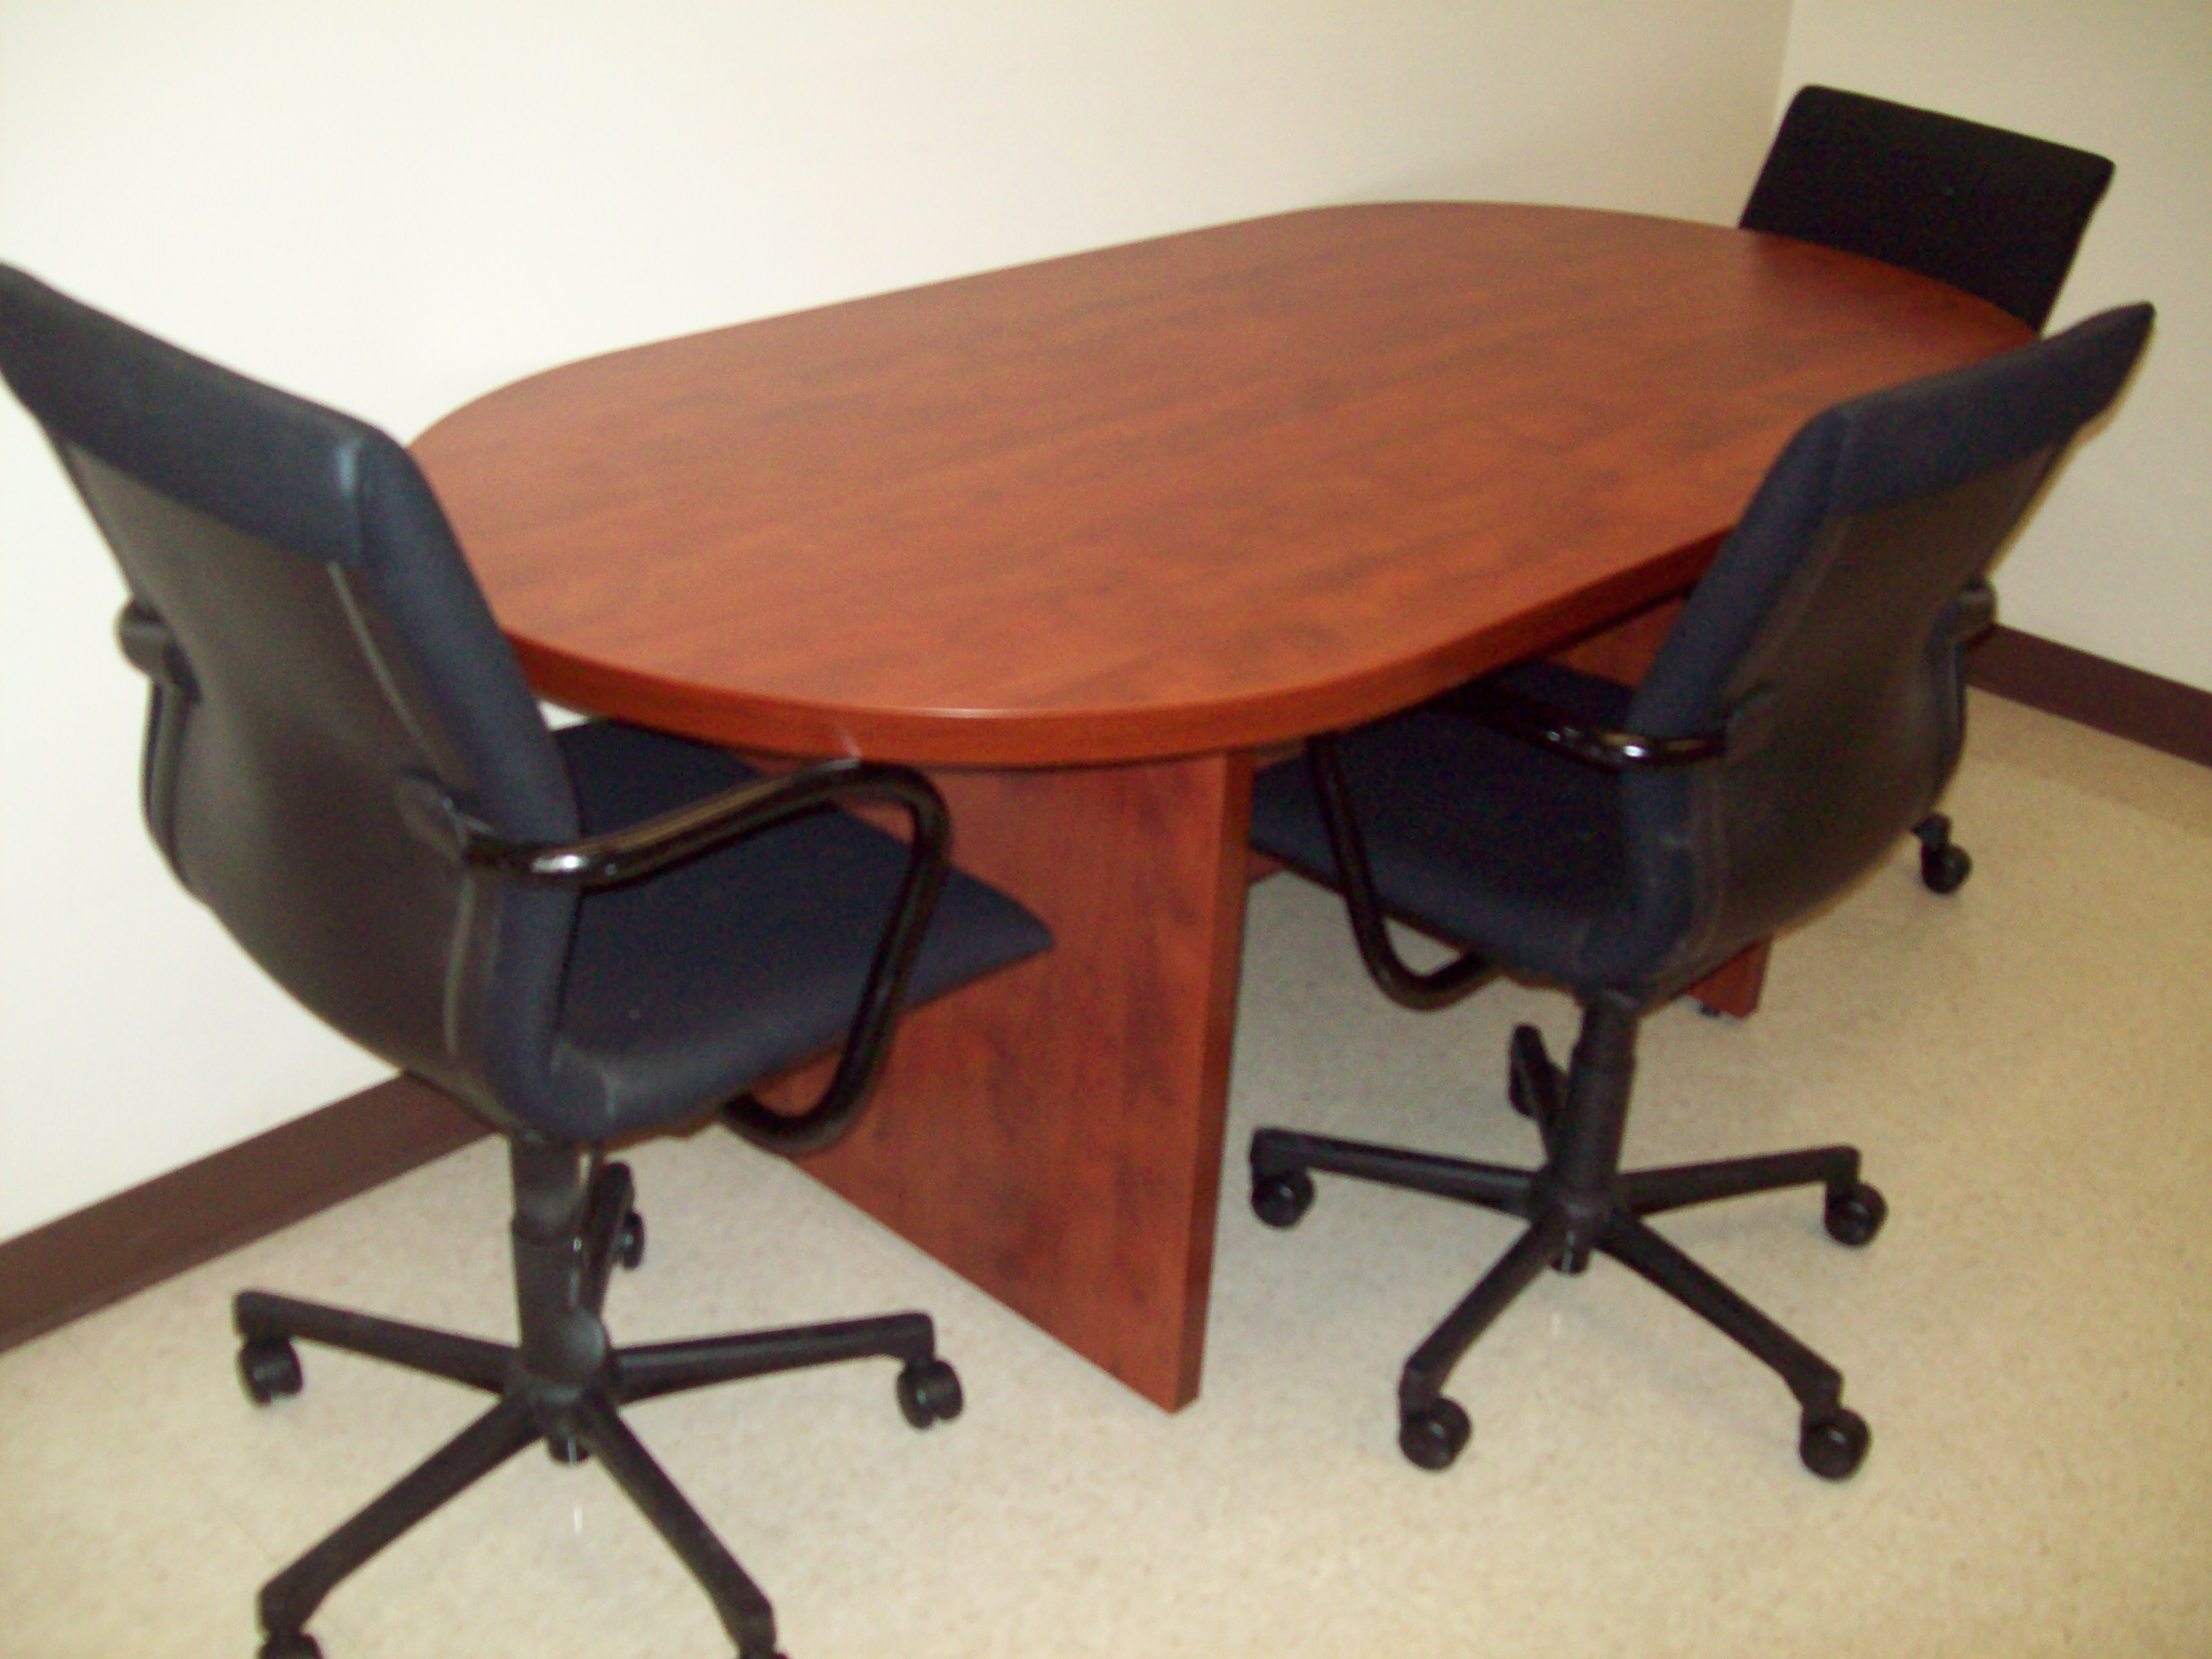 Used Conference Room Tables Chairs In All Shapes Sizes - Used conference room table and chairs